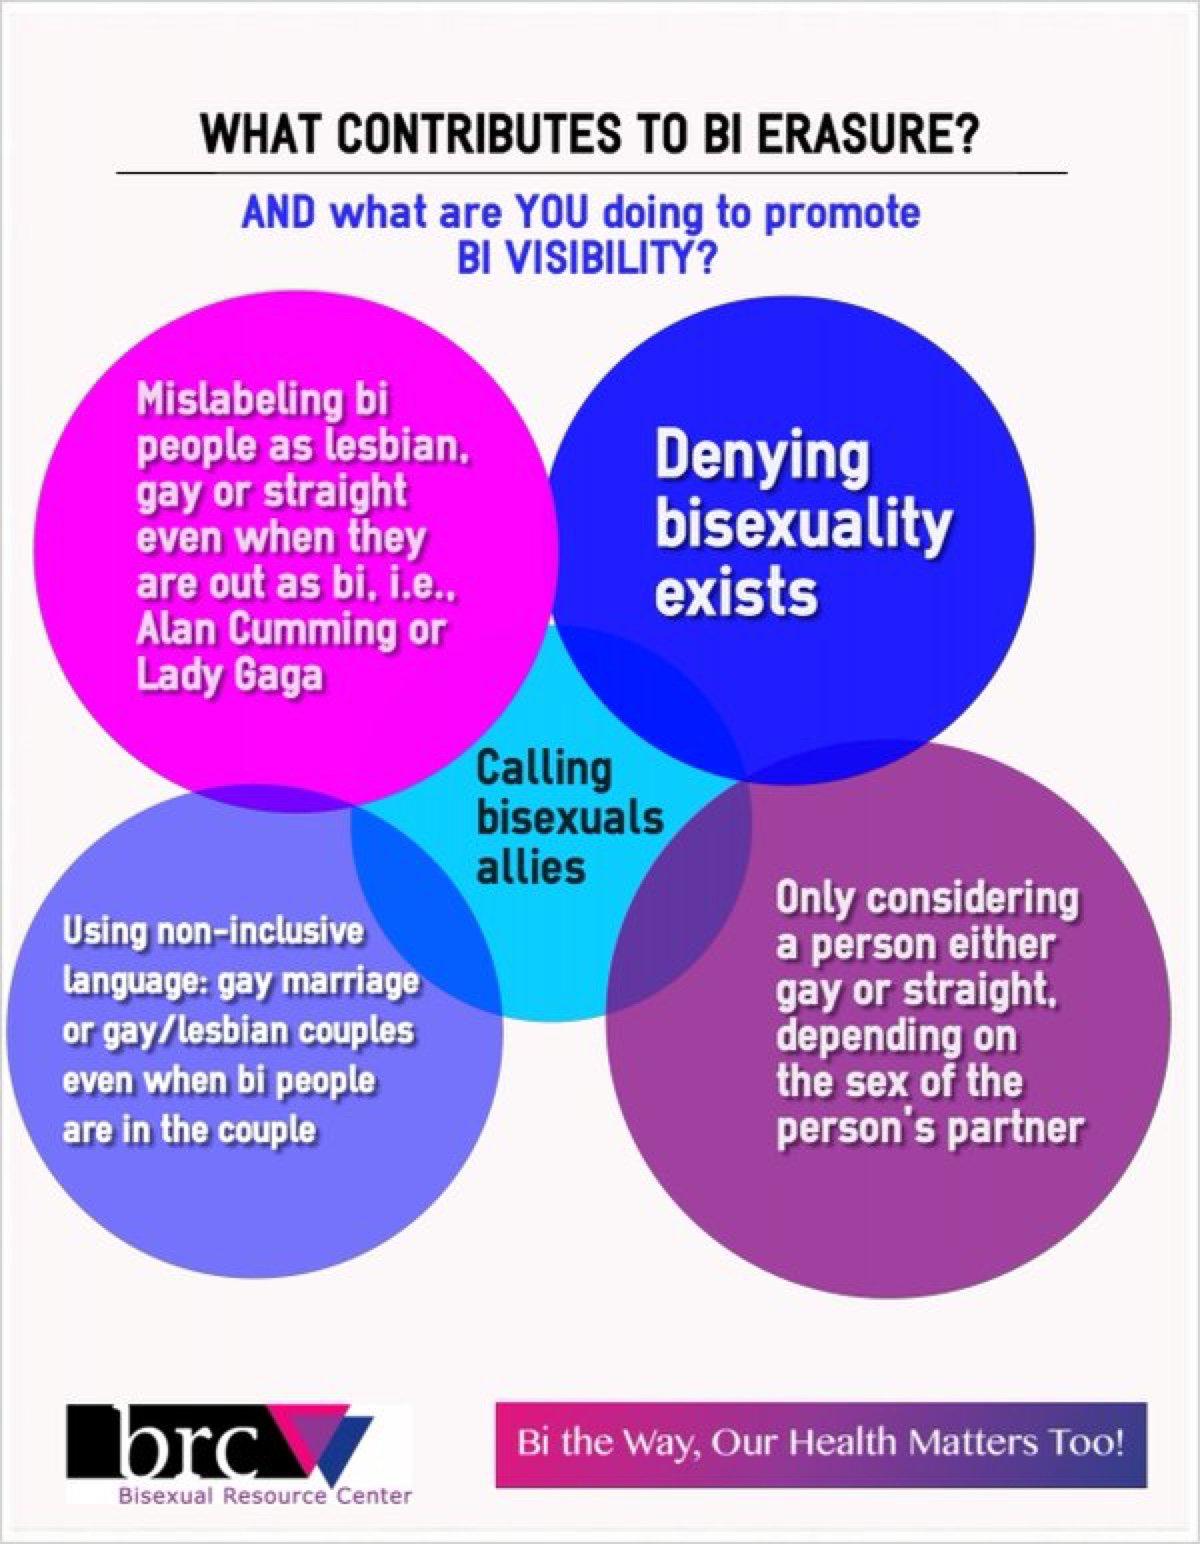 Posting again for #BiHealthMonth:What are YOU doing to promote bi visibility? #BHAM https://t.co/iXBzZ0q4P9